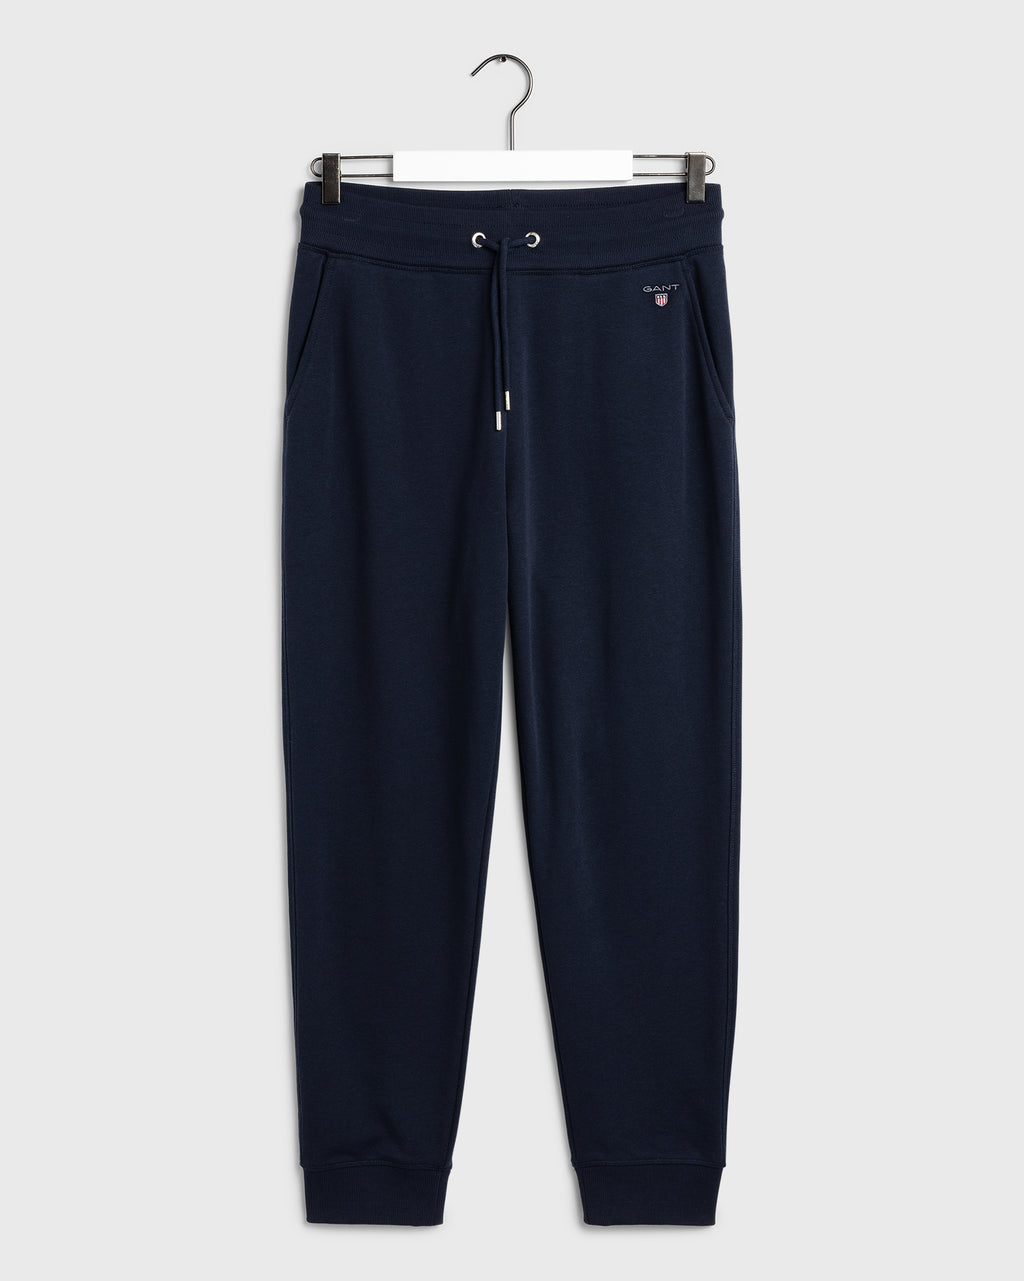 GANT HERR Original Sweatpants